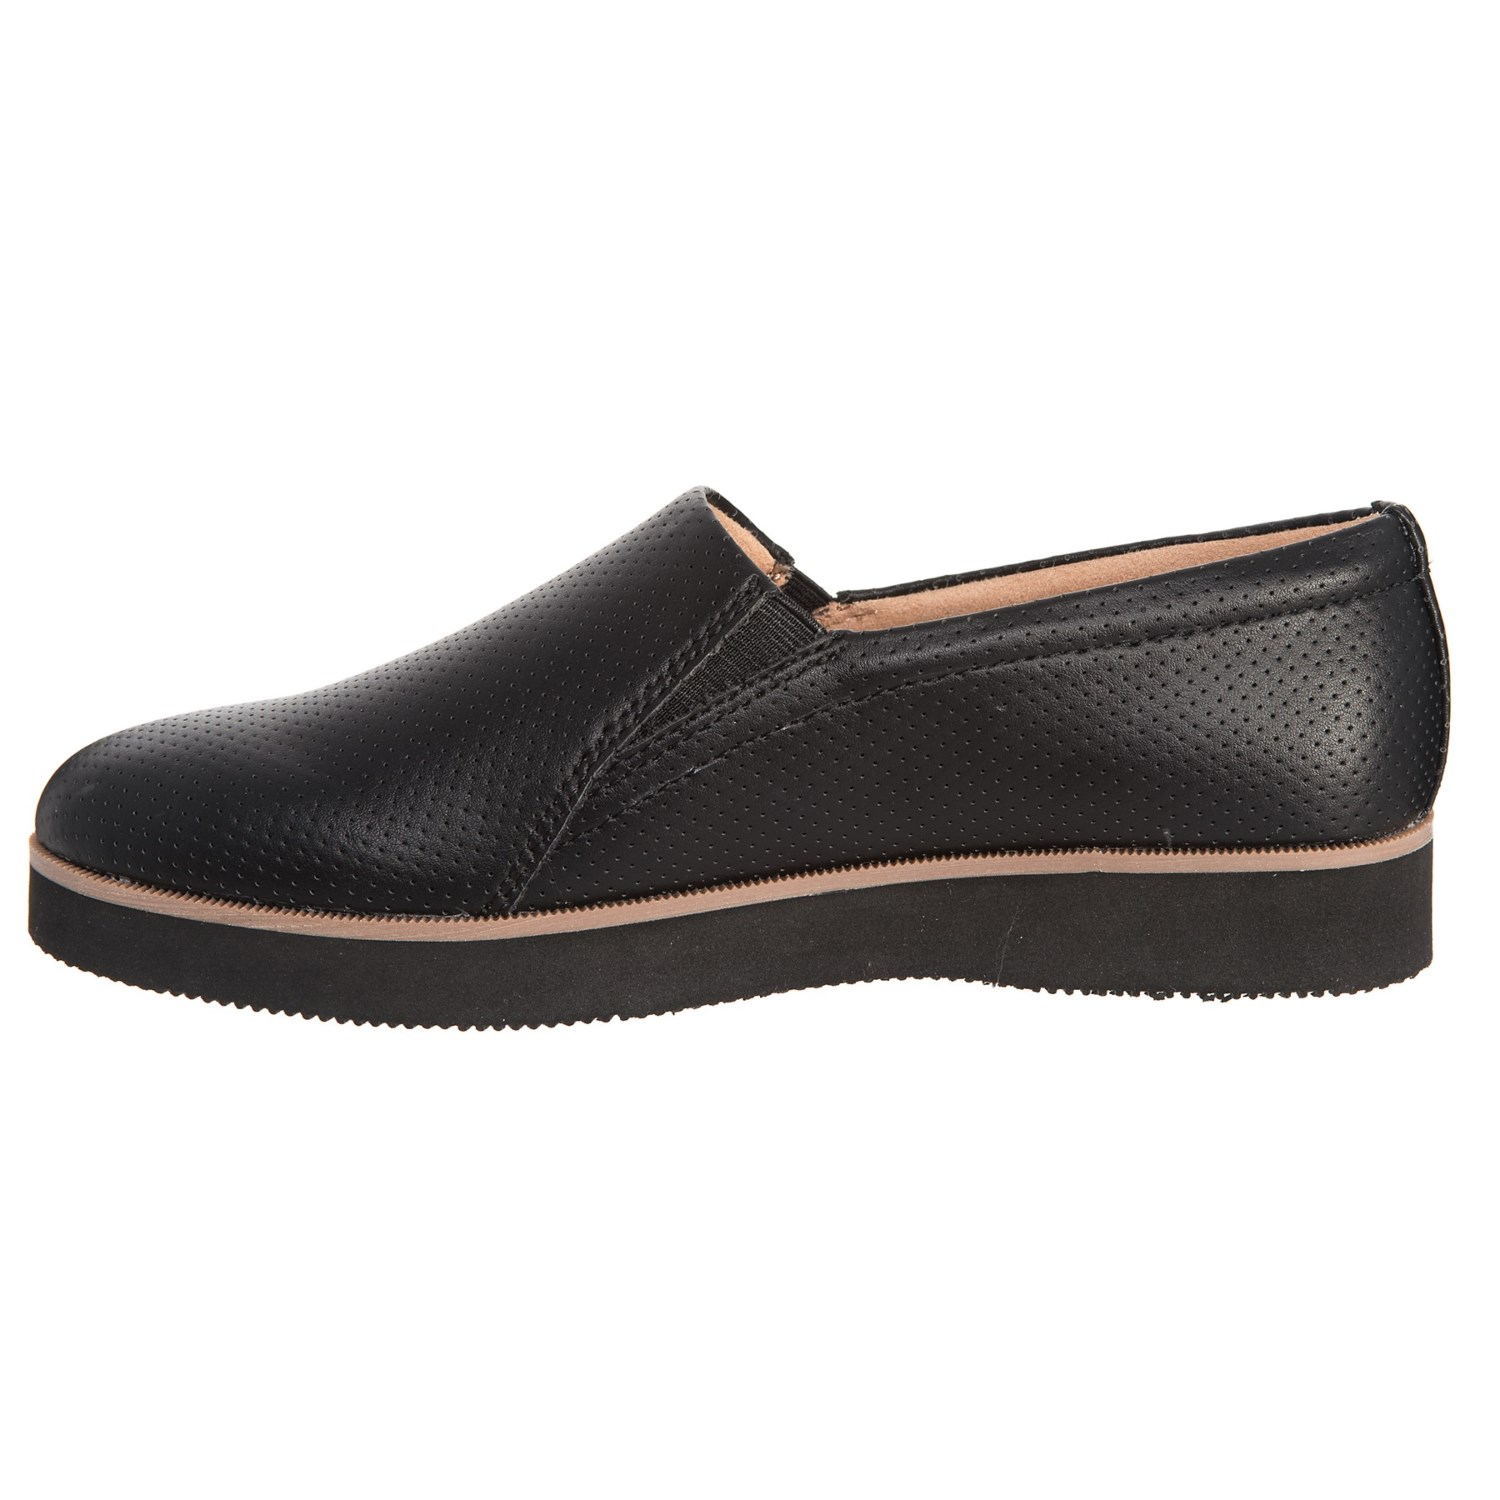 b750f4d2359 Naturalizer Zophie 2 Loafers (For Women) - Save 50%